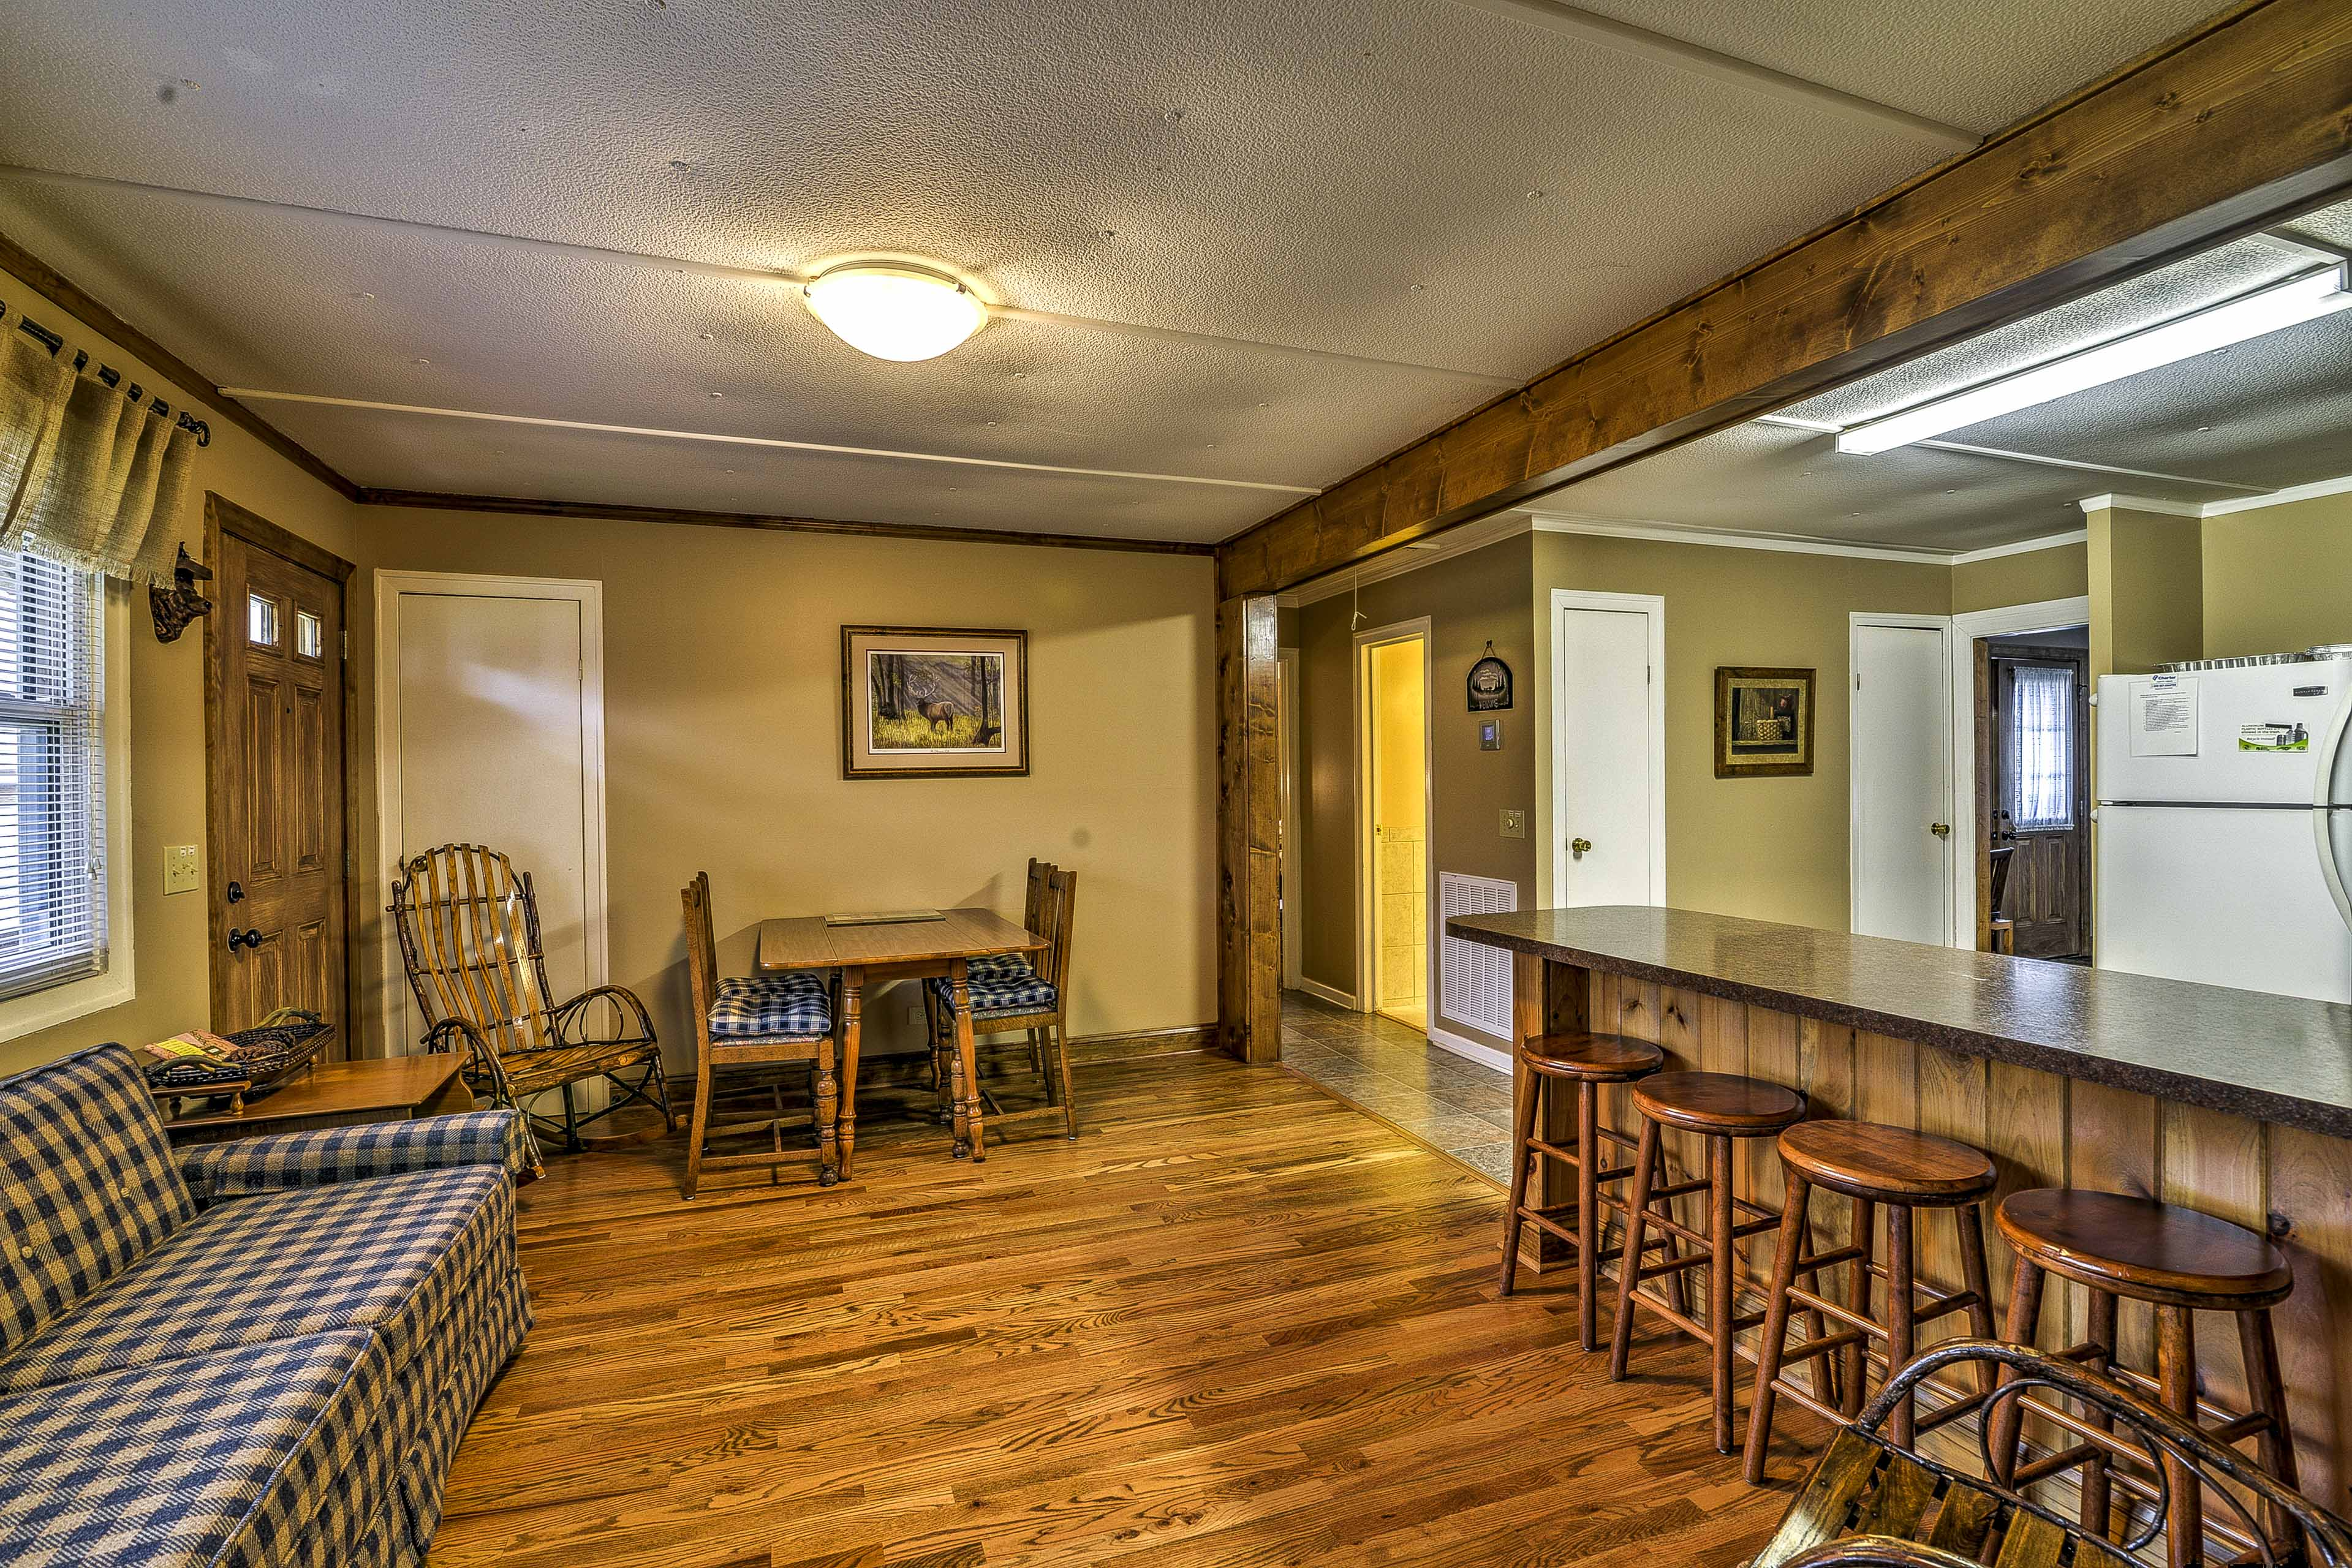 Pull up stool and enjoy breakfast at the quaint bar.